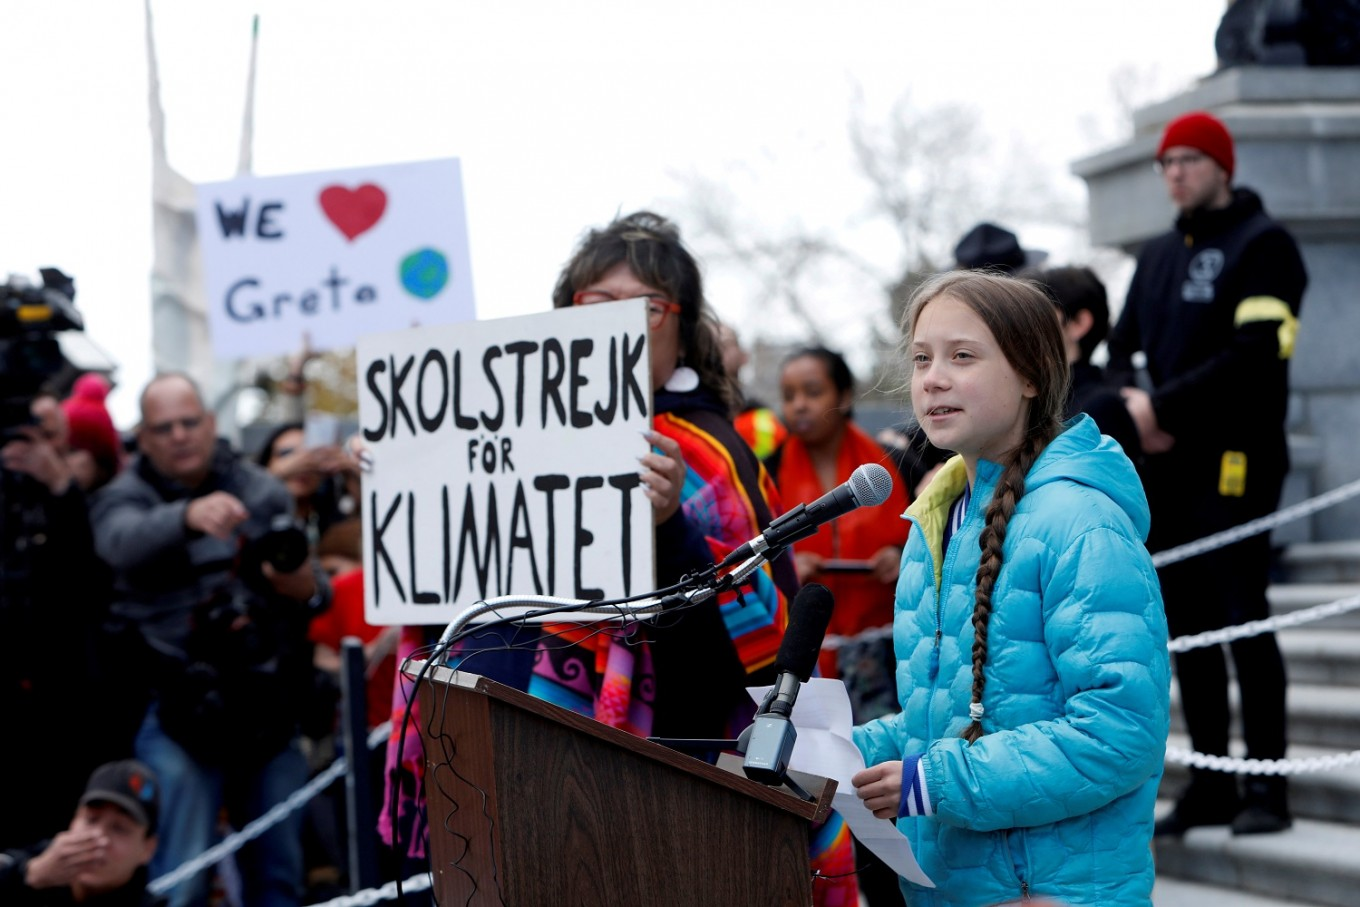 I wouldn't have wasted my time on Trump, says Greta Thunberg